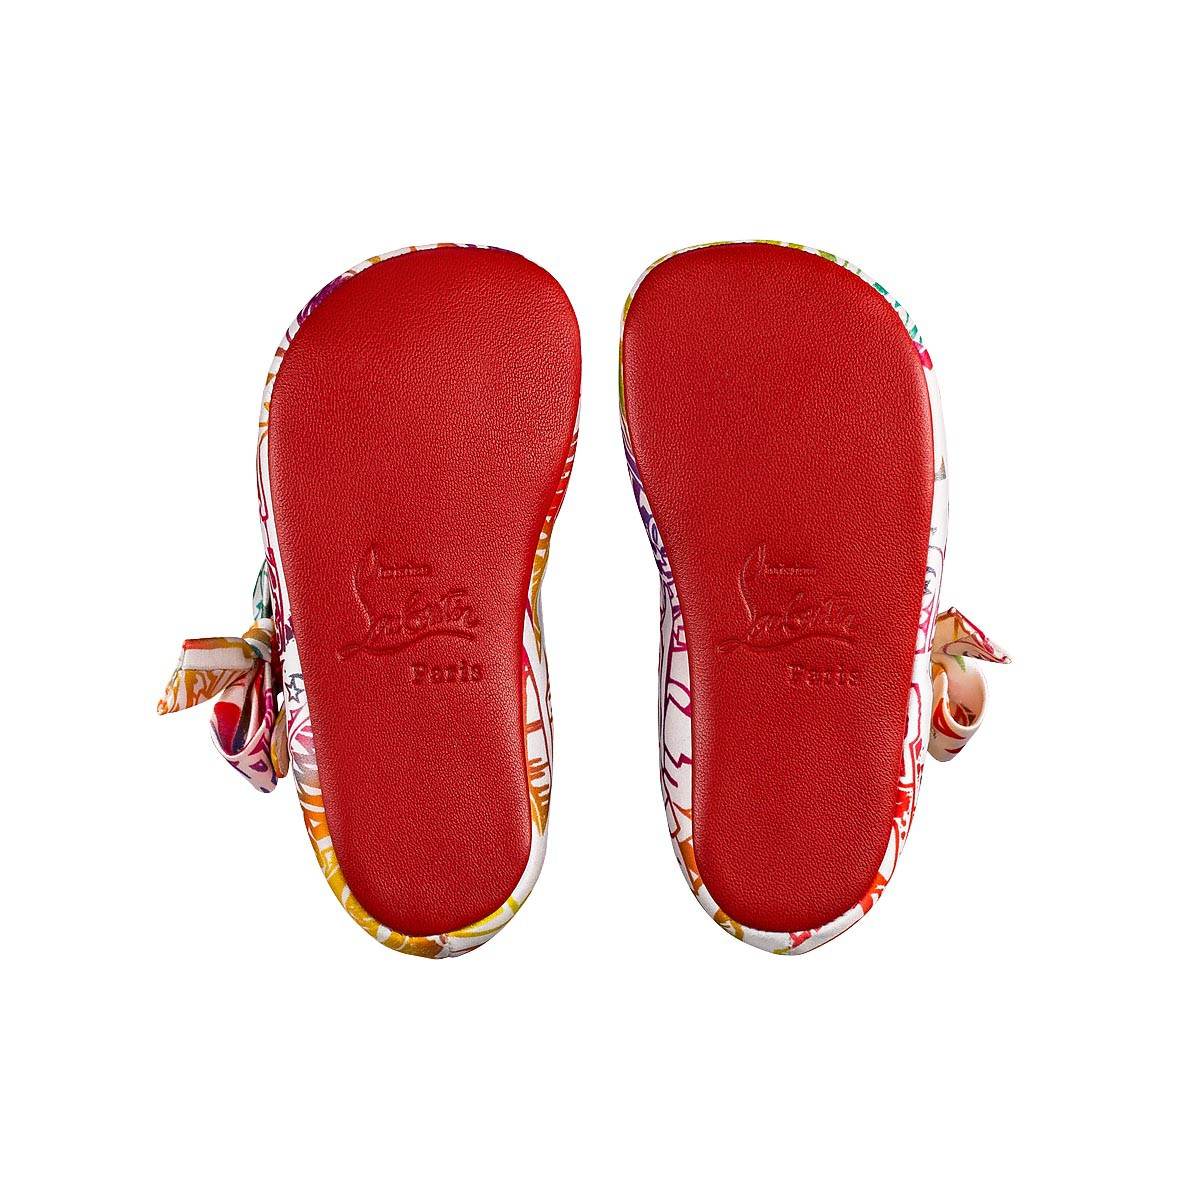 Women Kid Shoes - Baby Shoes Wallgraf Multi - Christian Louboutin